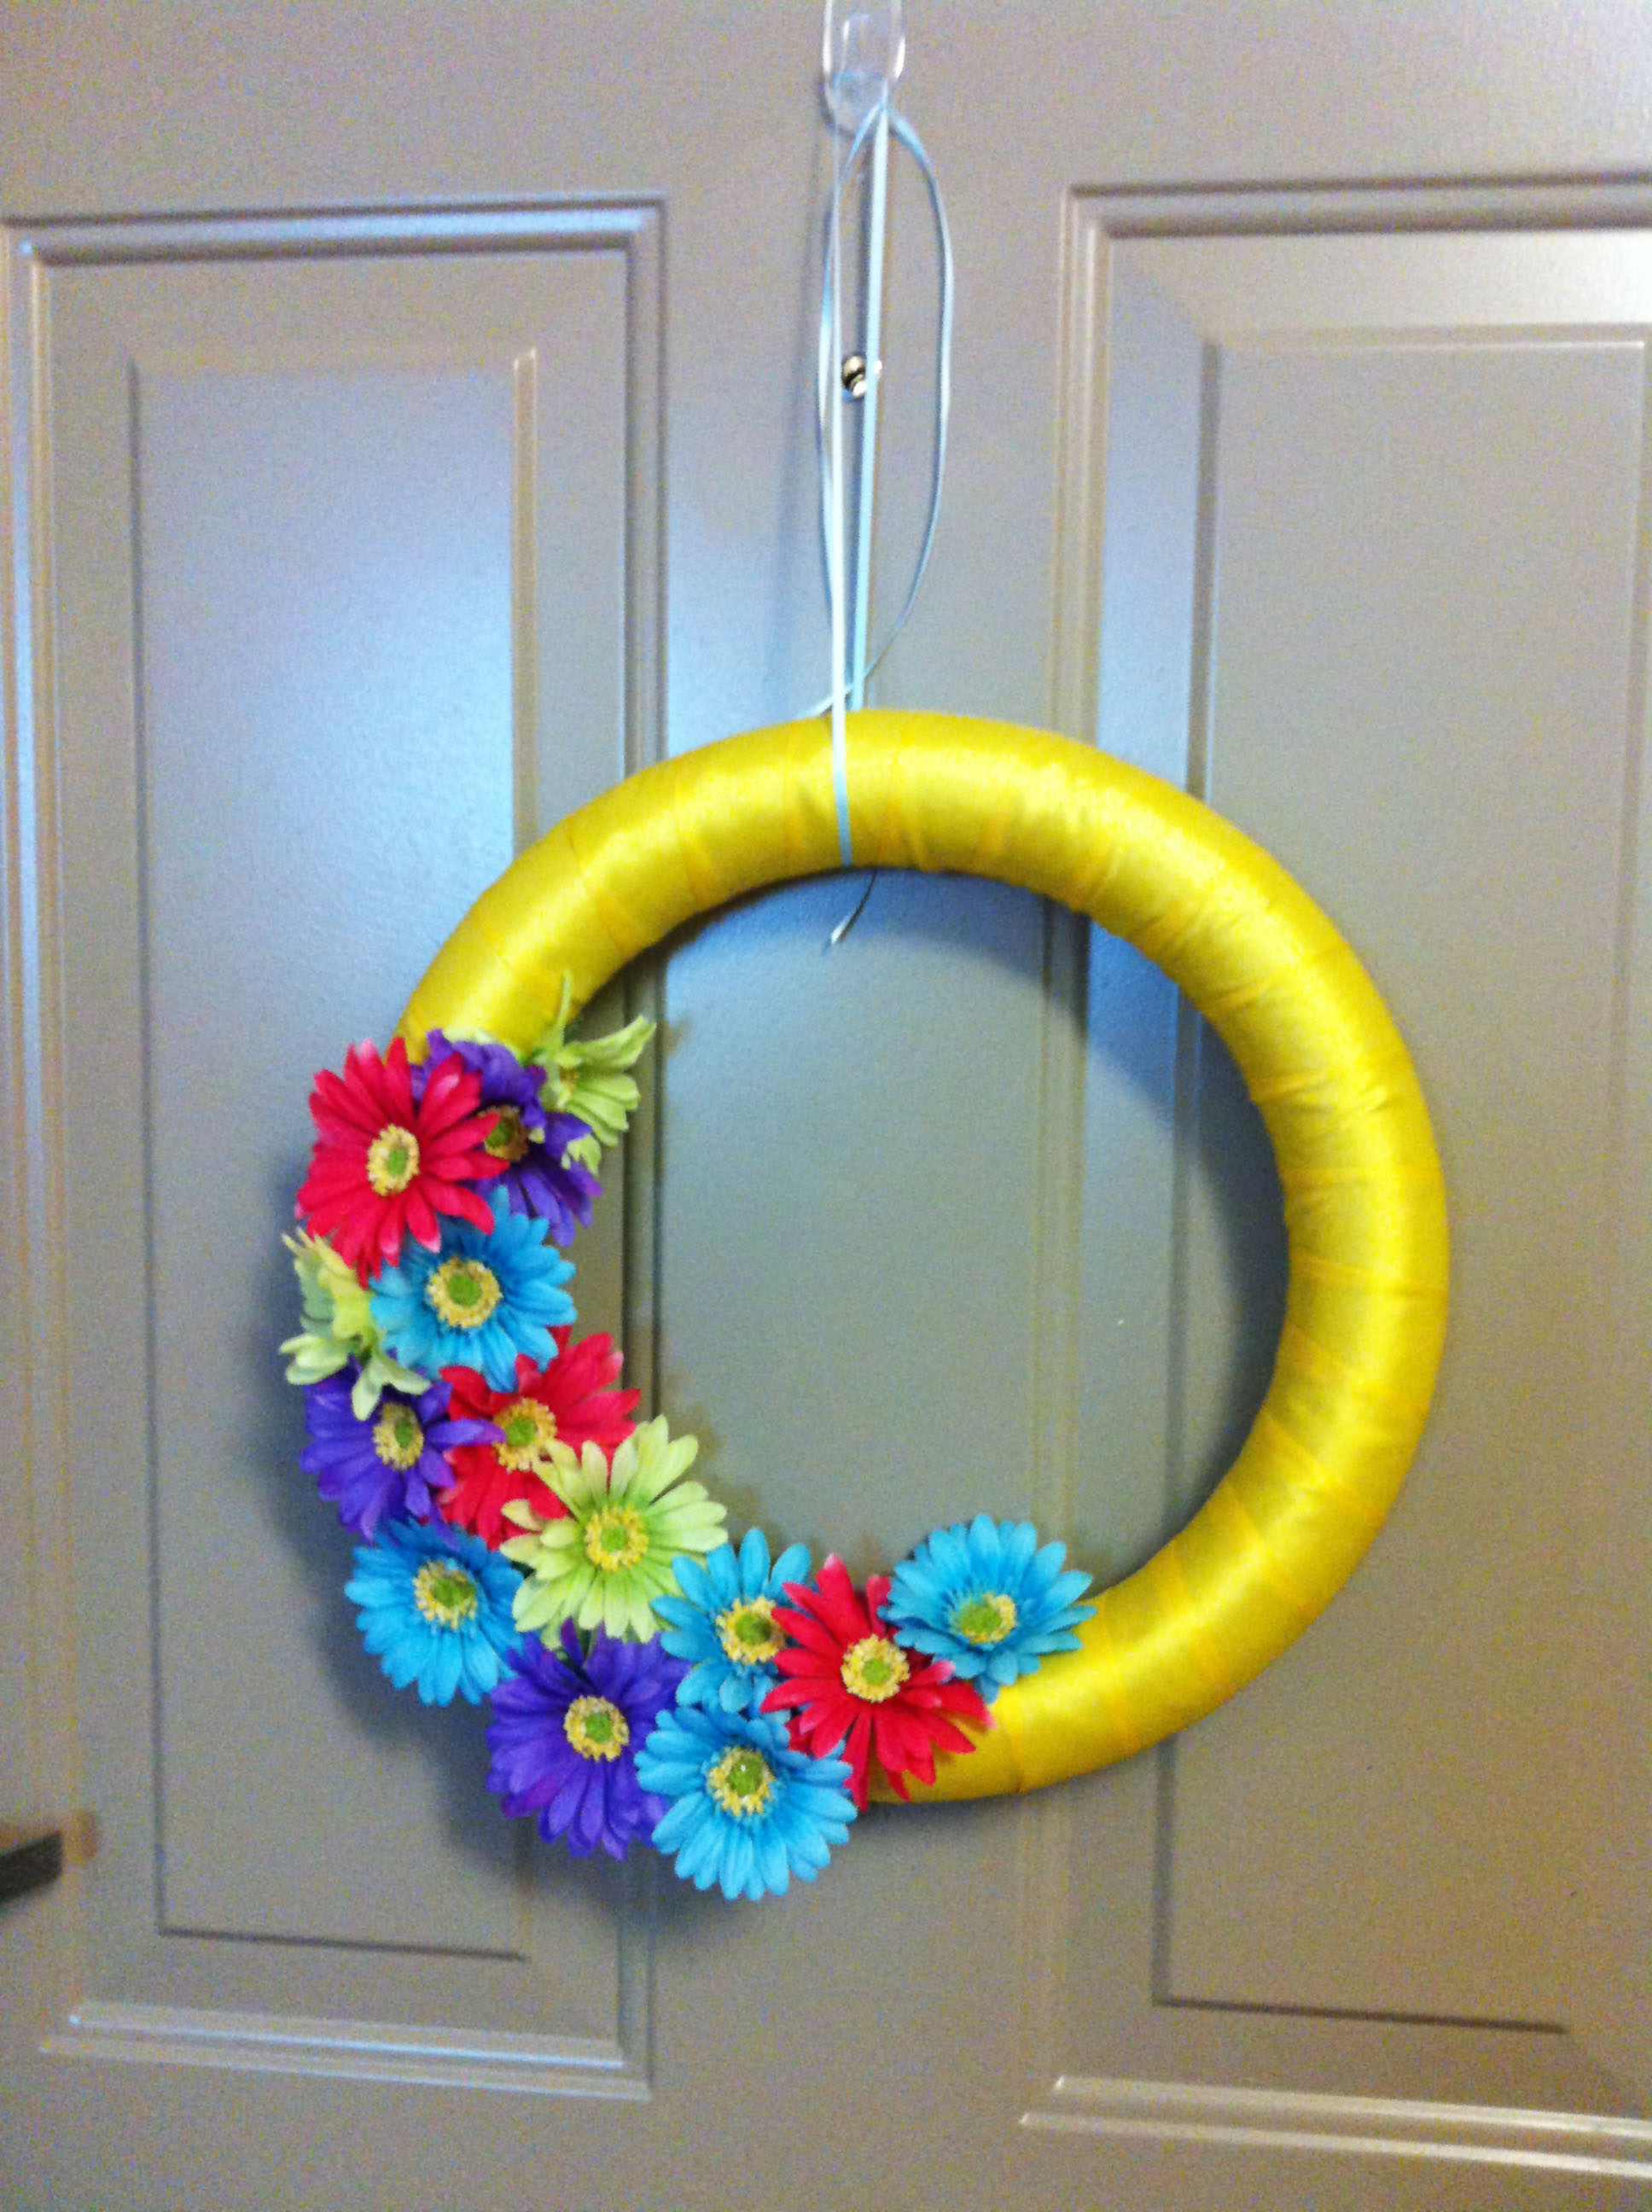 39 Diy Spring Wreaths For The Front Door That You Can Make Guide Patterns